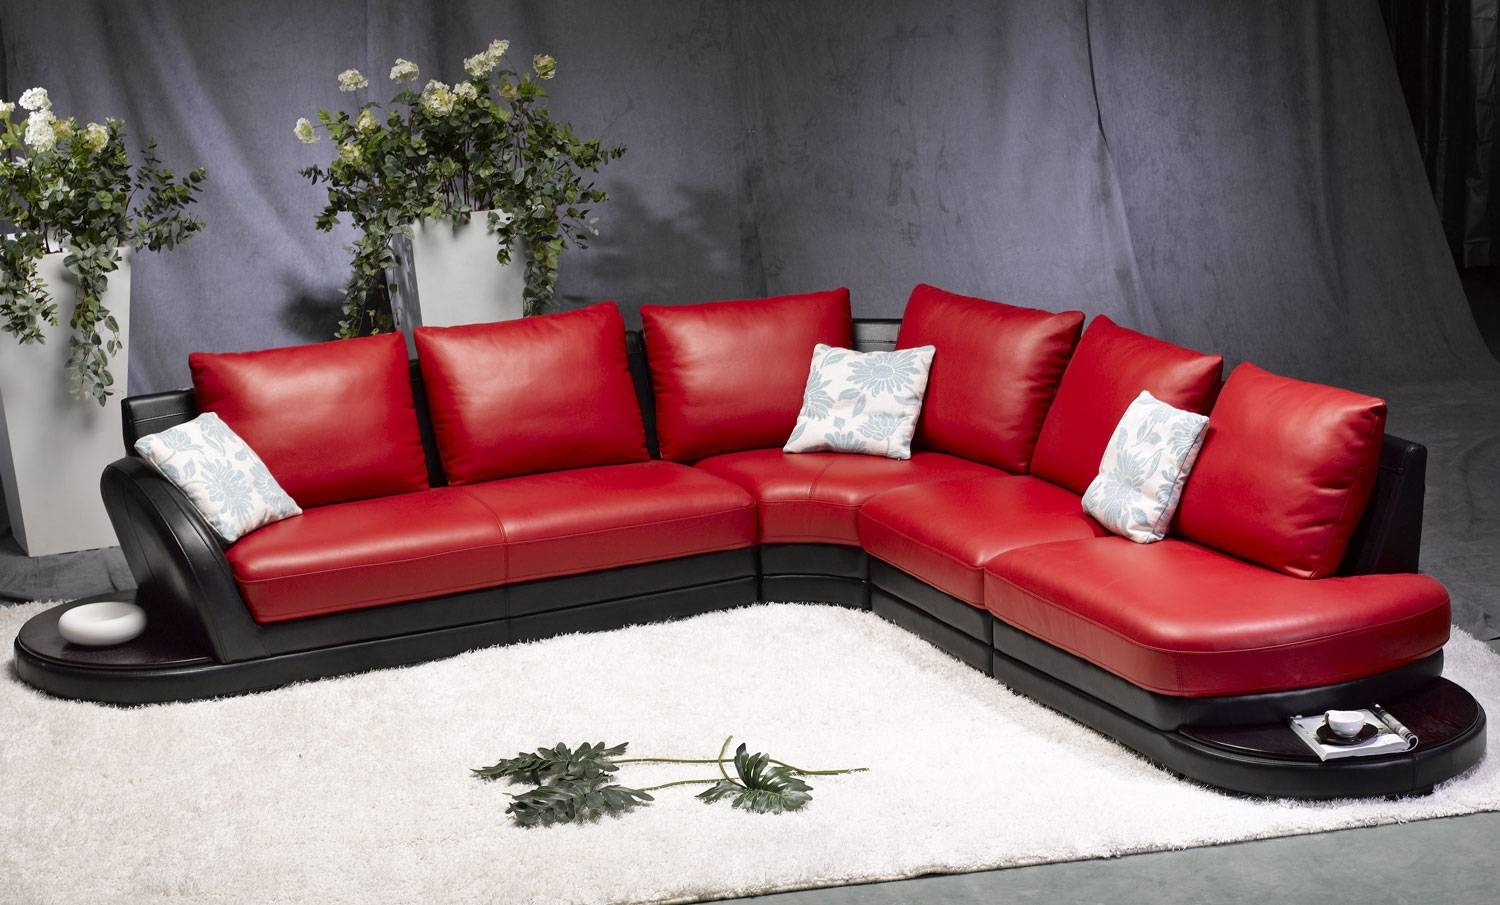 Tosh Furniture Modern Red/black Leather Sectional Sofa - Flap Stores inside Red Black Sectional Sofa (Image 30 of 30)